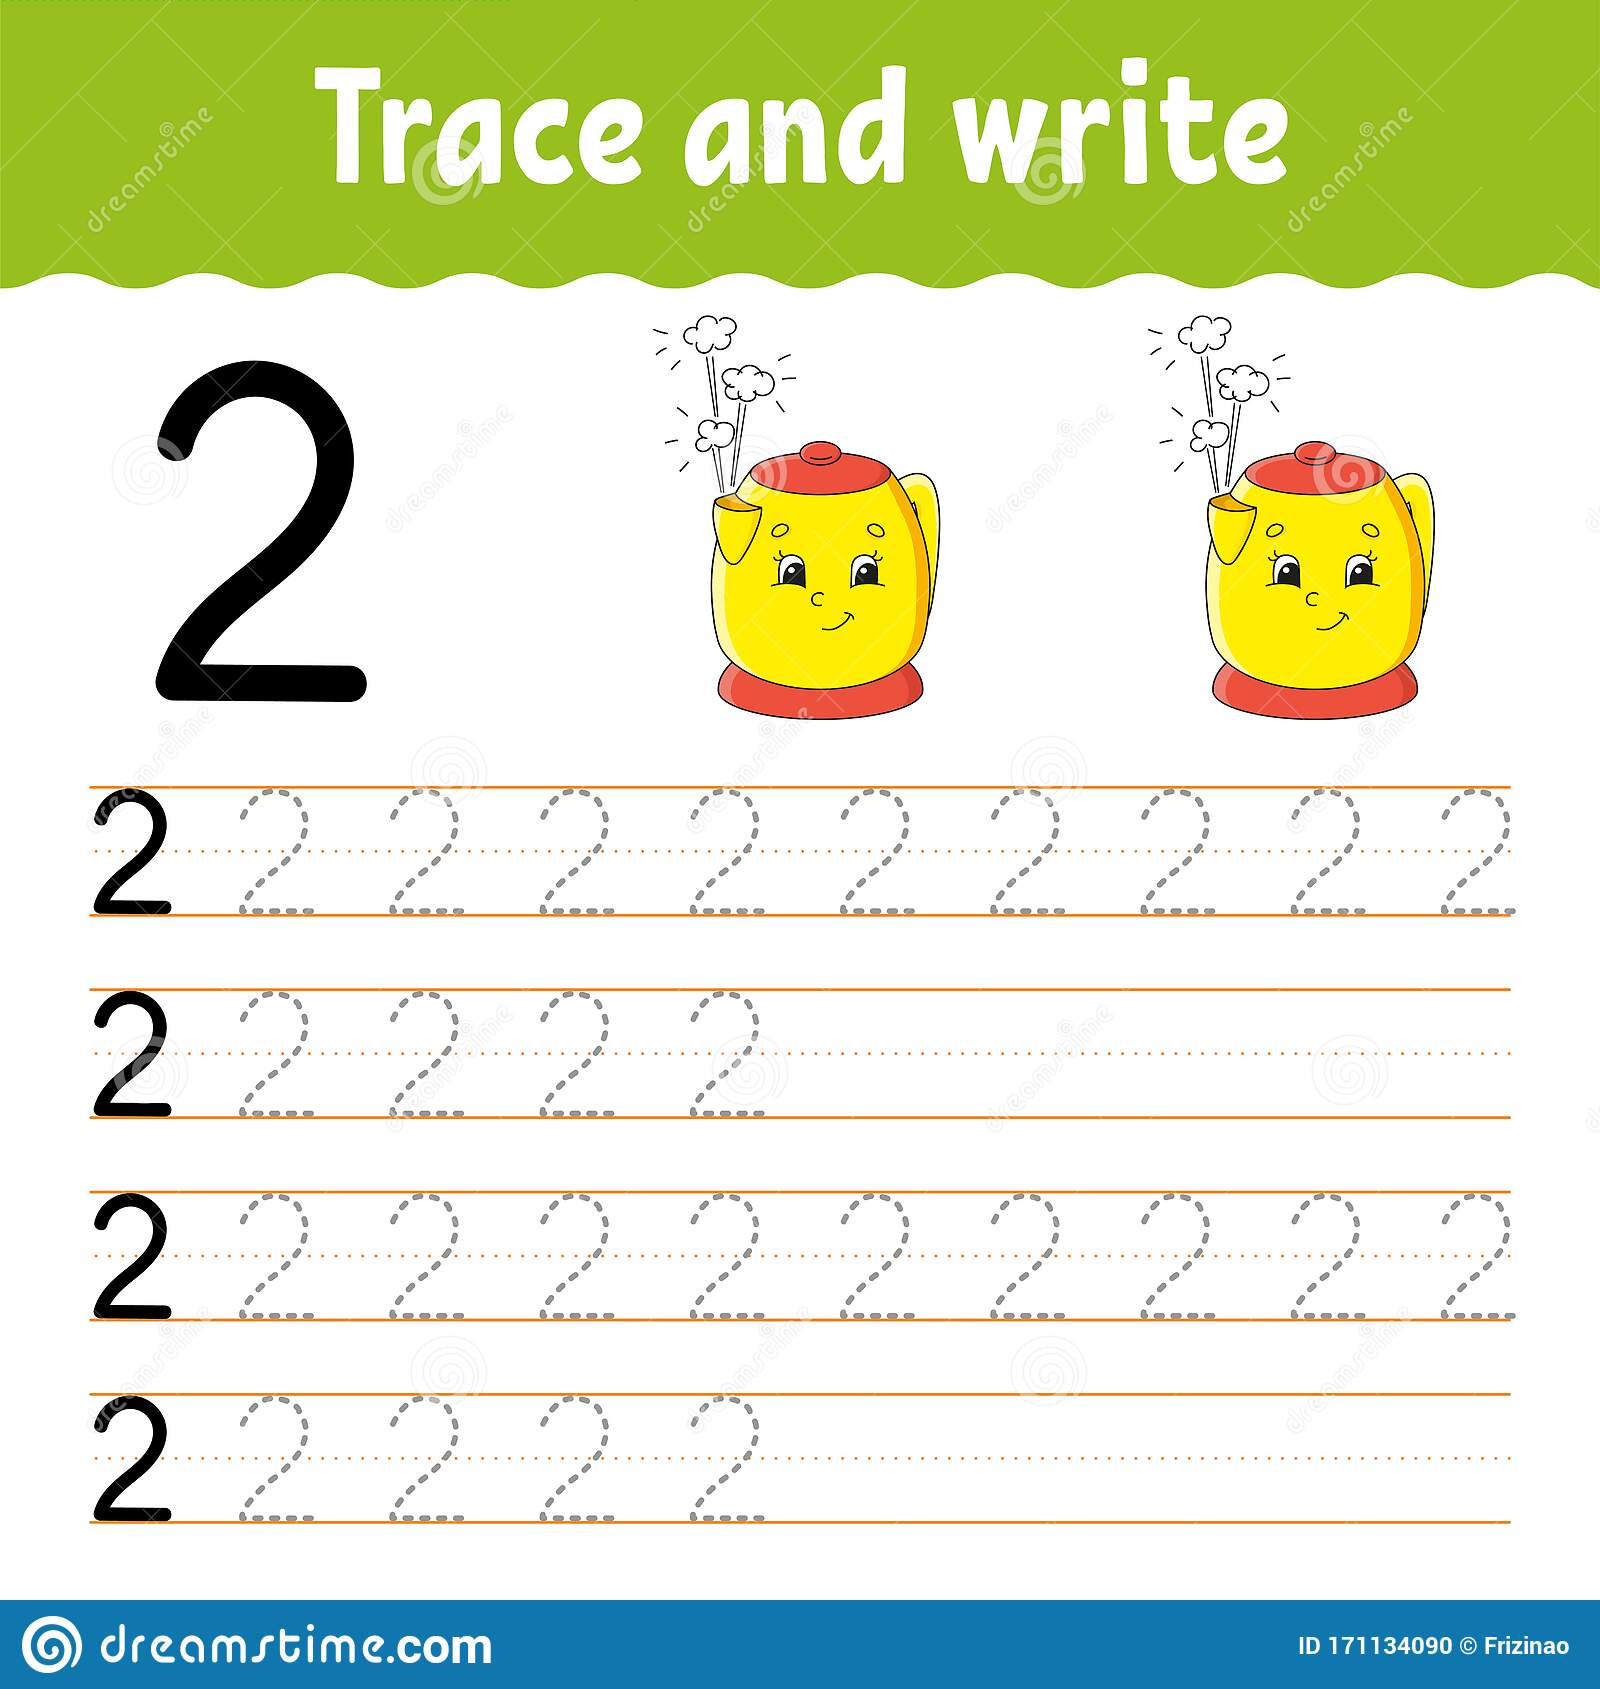 Number 2 Trace And Write Handwriting Practice Learning